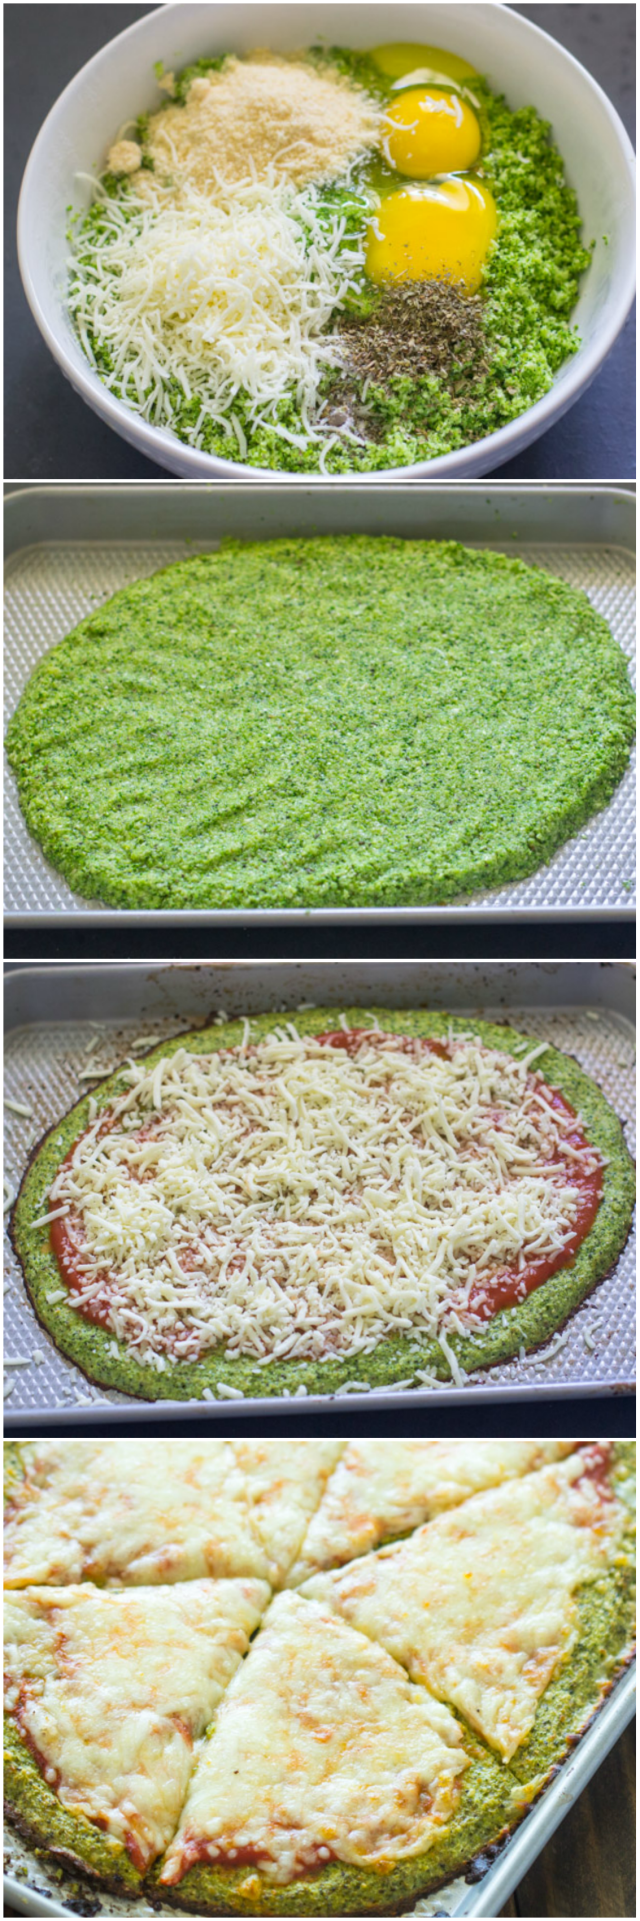 #brocolli #crust #pizza #healthy #food #meal #recipes #MeaghanElizabeth #brocollicrustpizza